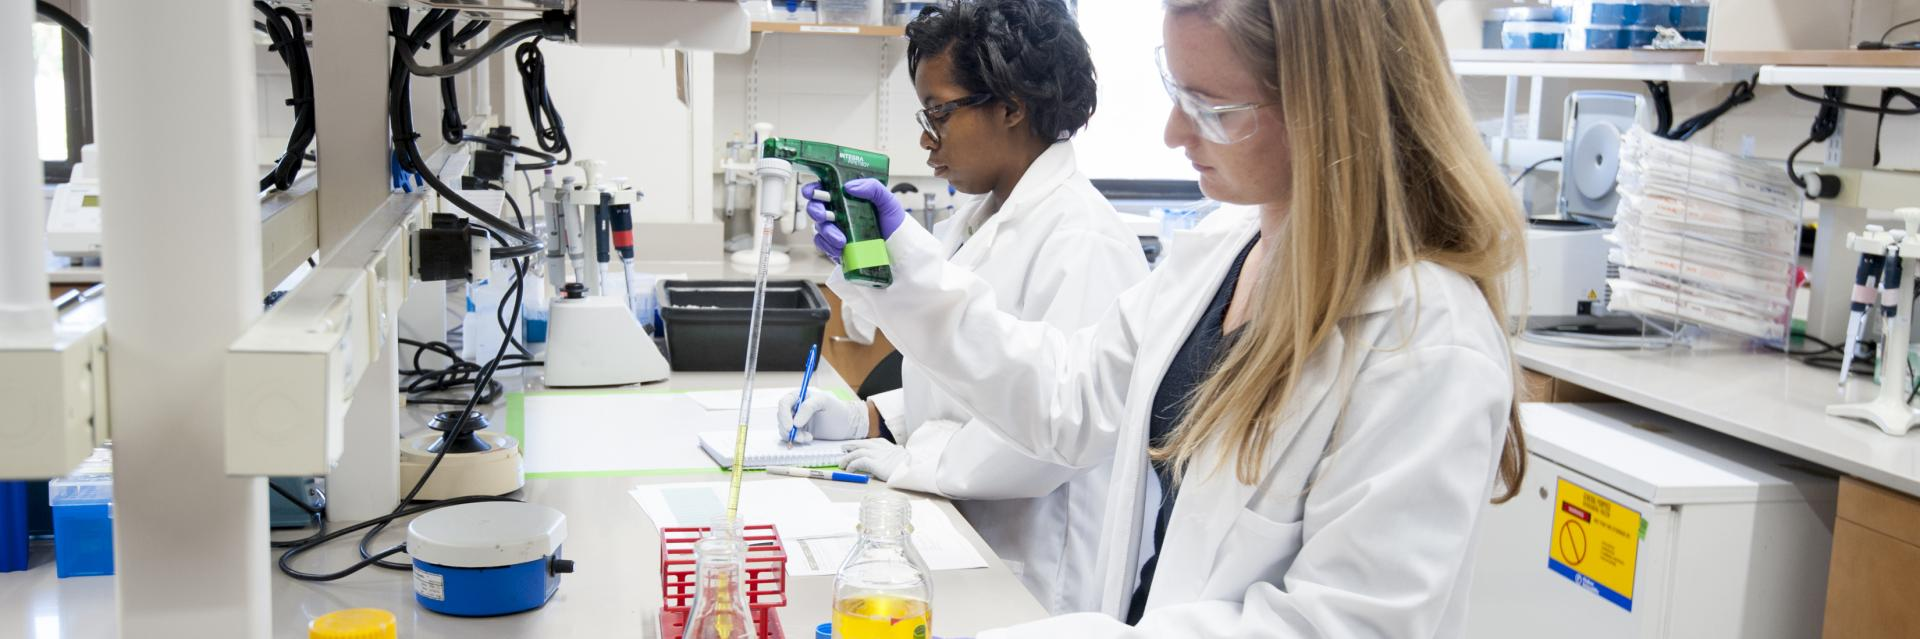 Photo of students in lab